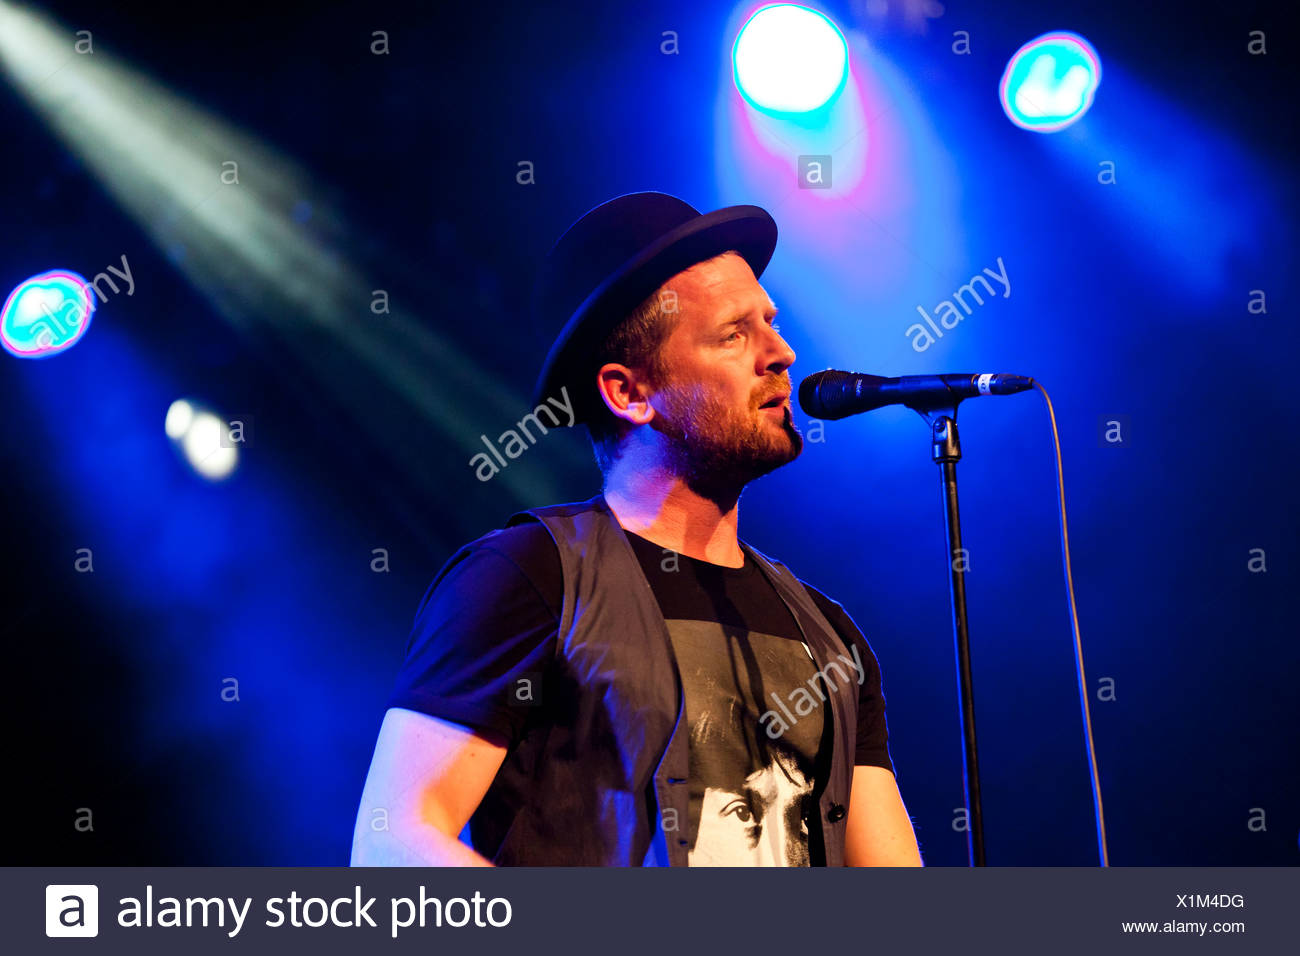 Bart van der Weide, singer of the Dutch band Racoon, performing live in the Schueuer concert hall, Lucerne, Switzerland, Europe - Stock Image